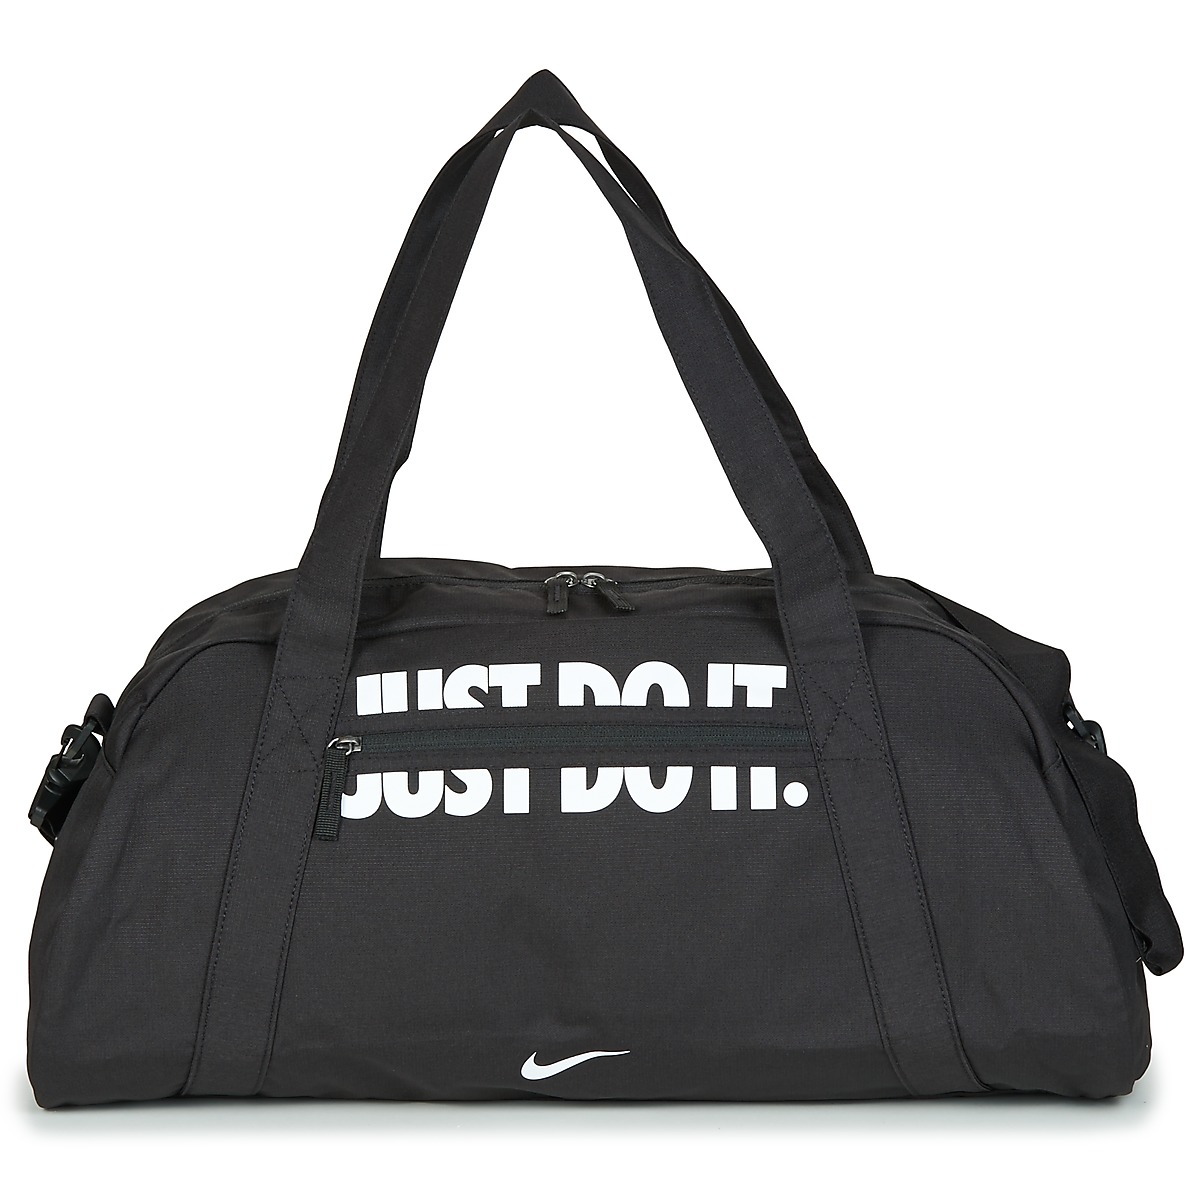 Borsa da sport donna Nike  Nike Gym Club Training Duffel Bag  Nero